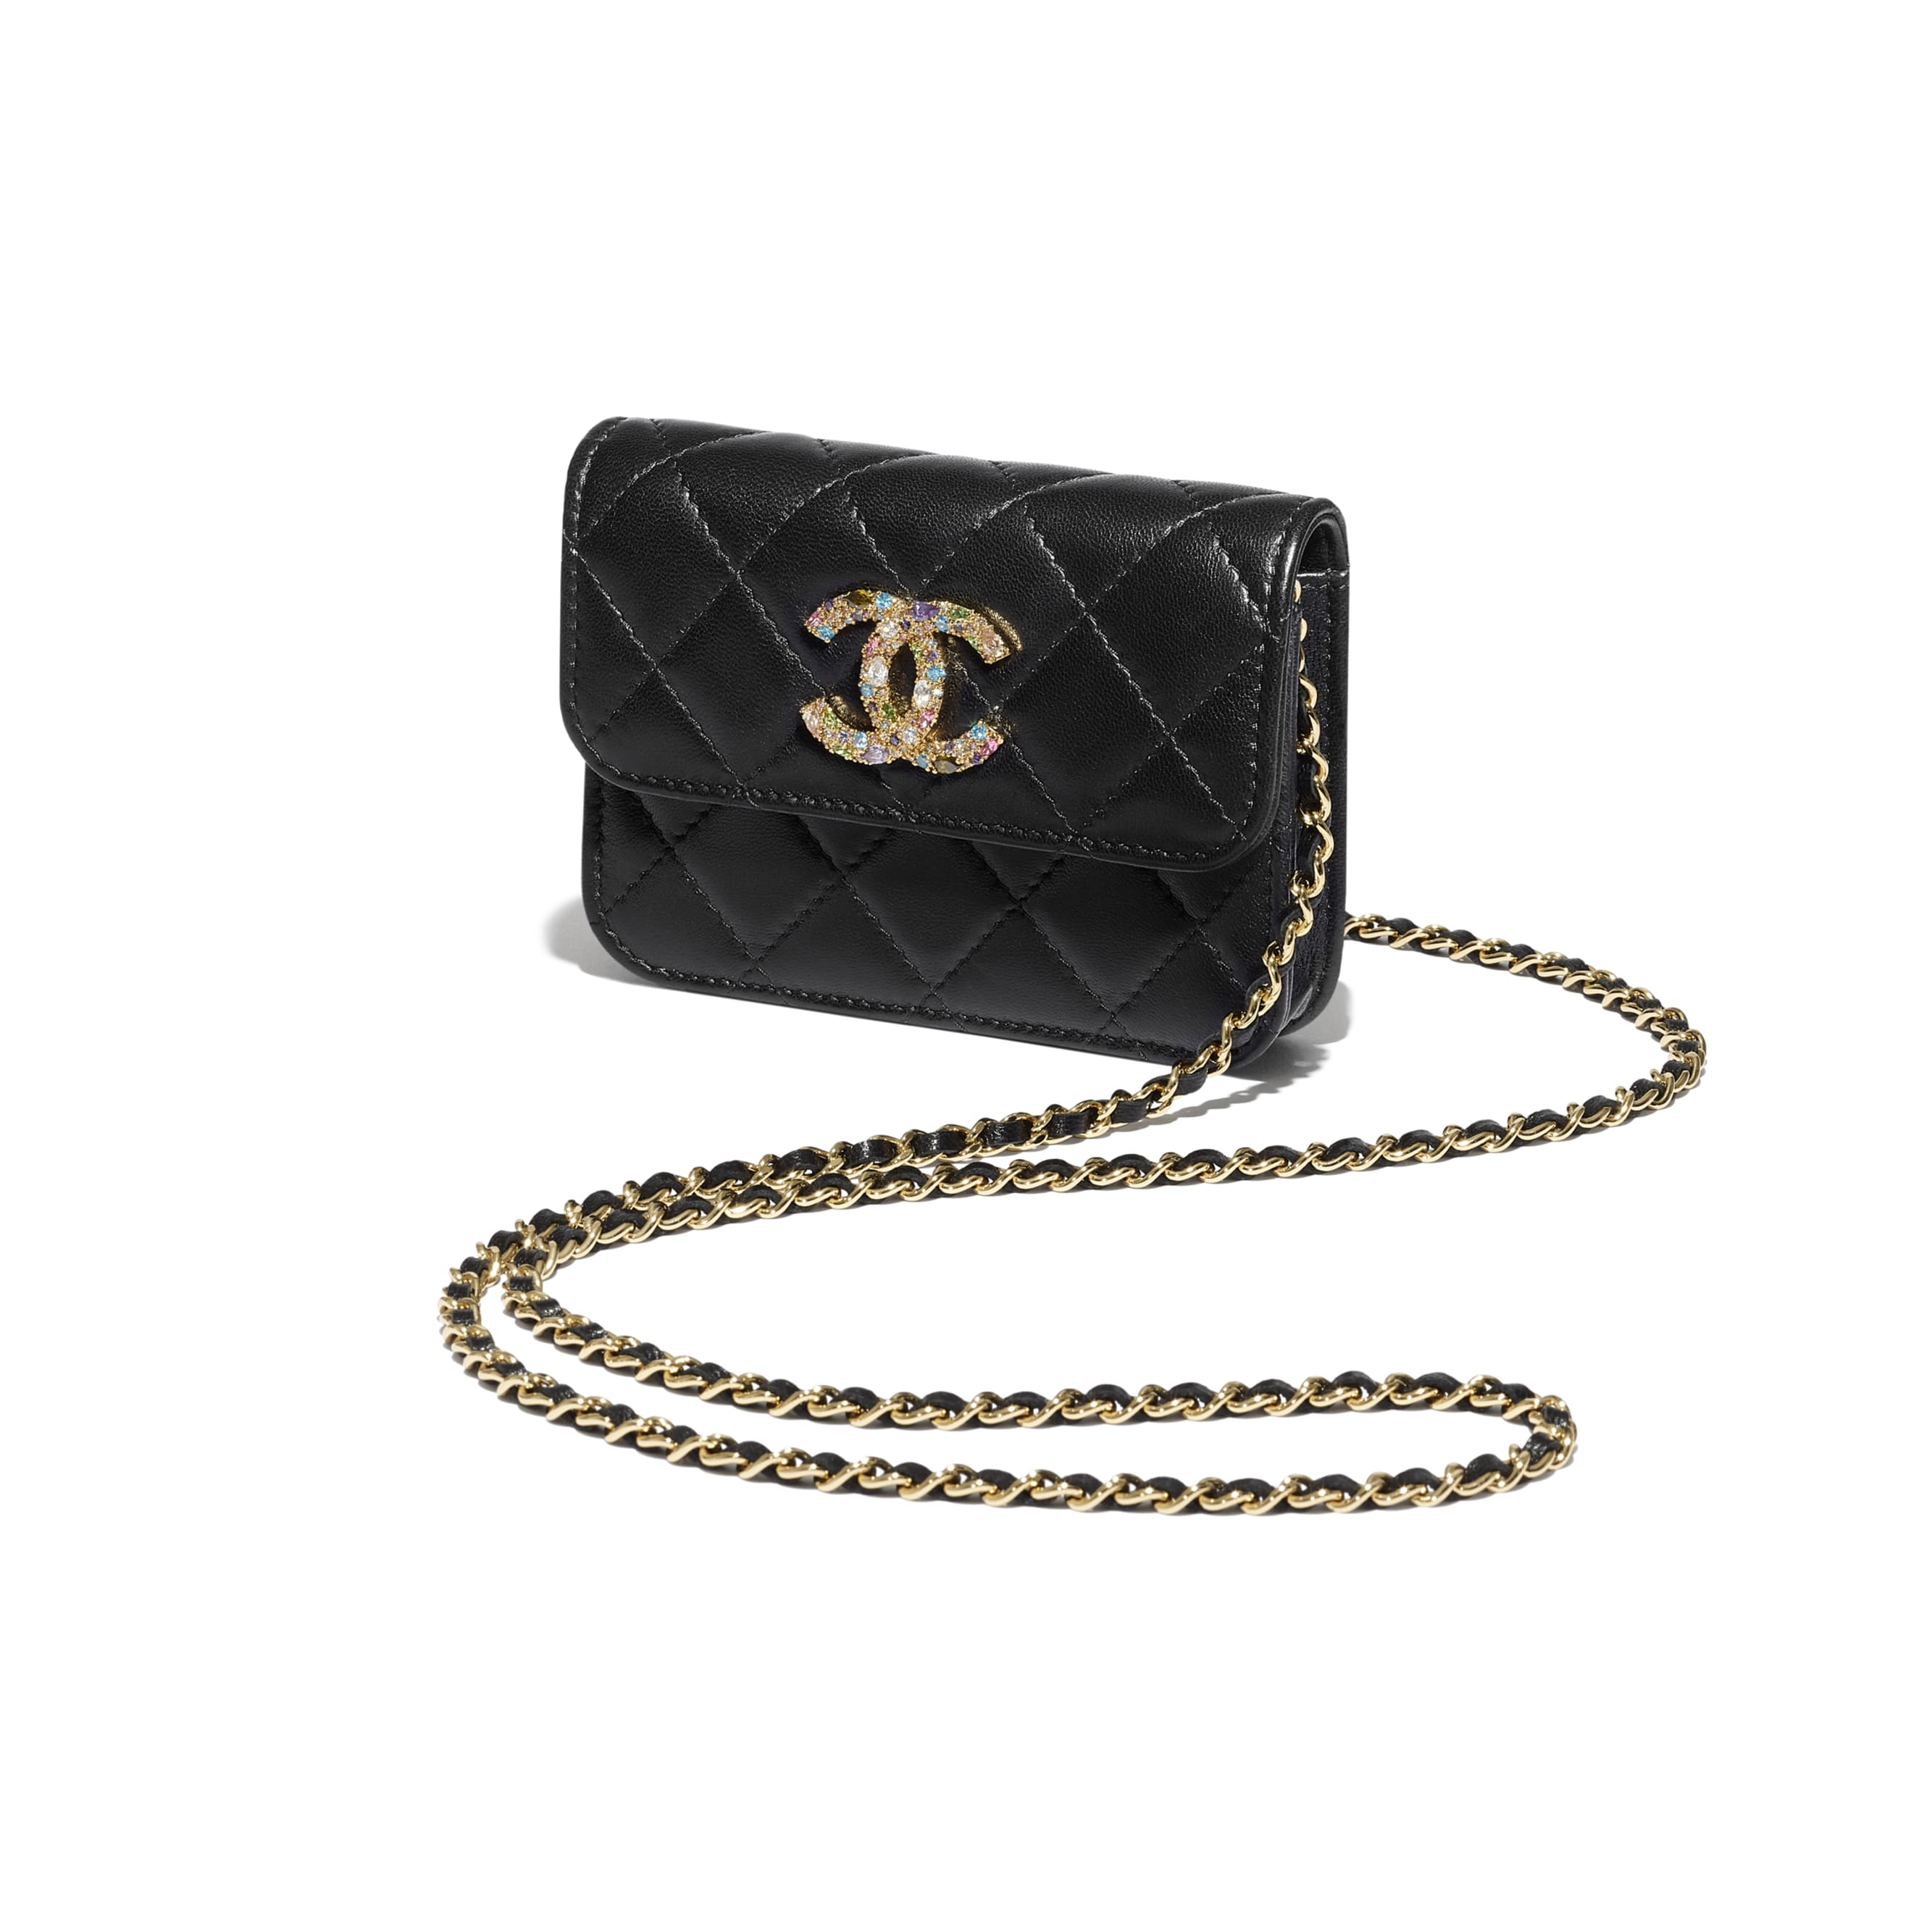 Clutch With Chain - Black - Lambskin, Zirconium & Gold-Tone Metal - CHANEL - Extra view - see standard sized version